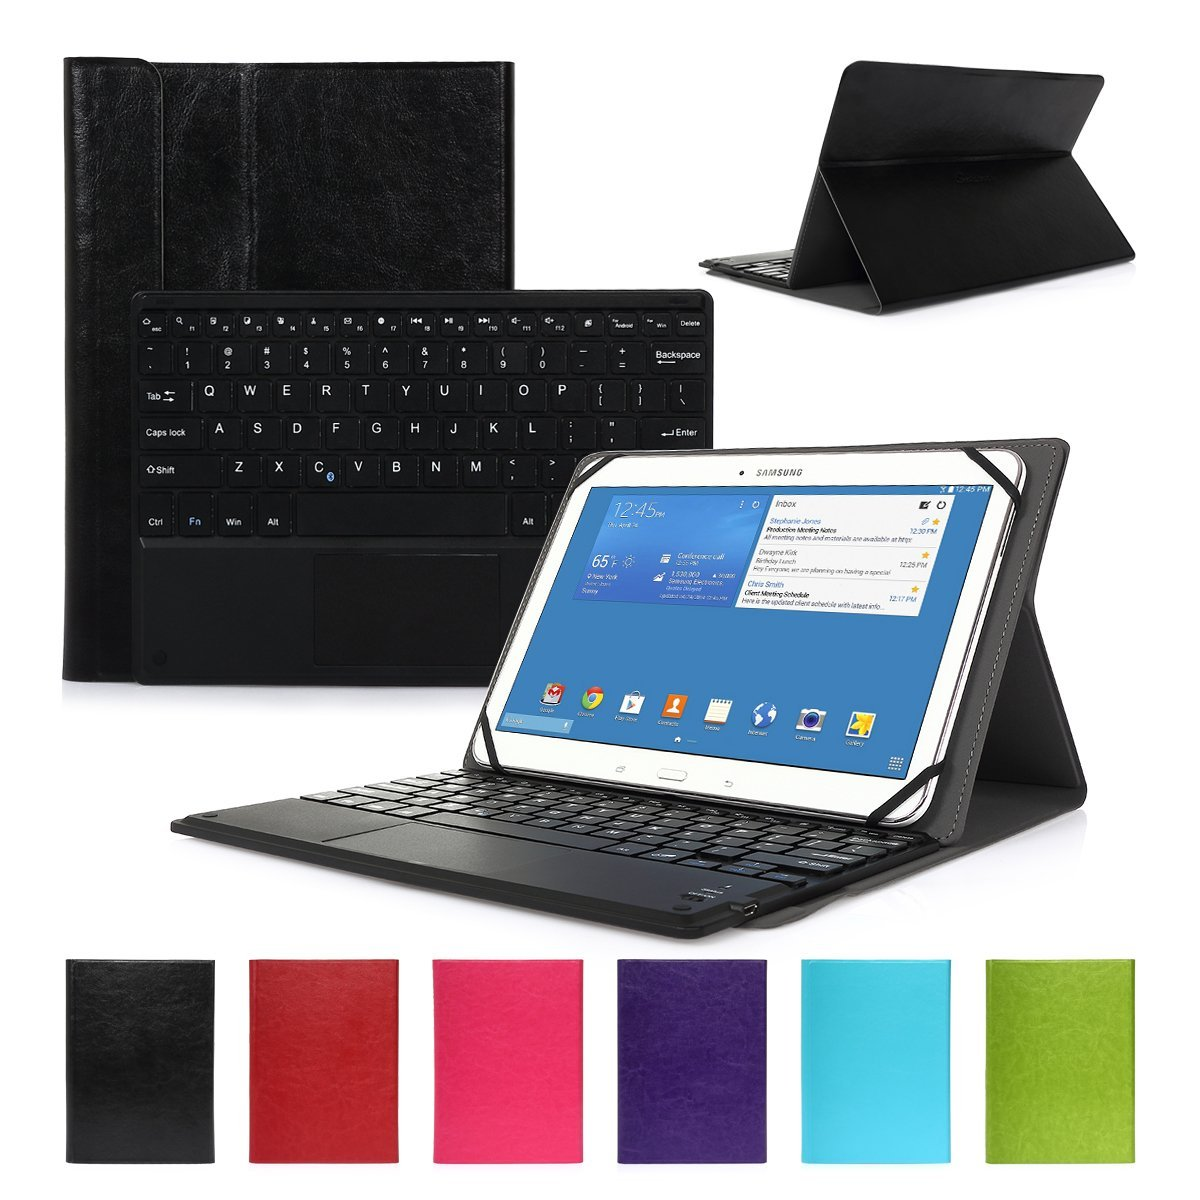 CoastaCloud Wireless Bluetooth Keyboard Leather Case with Auto Wake/Sleep for Samsung Galaxy Tab S2 8.0 9.7 10.1, Tab 3, Tab 4, Tab A and More 9 inch-10 inch Tablet PC